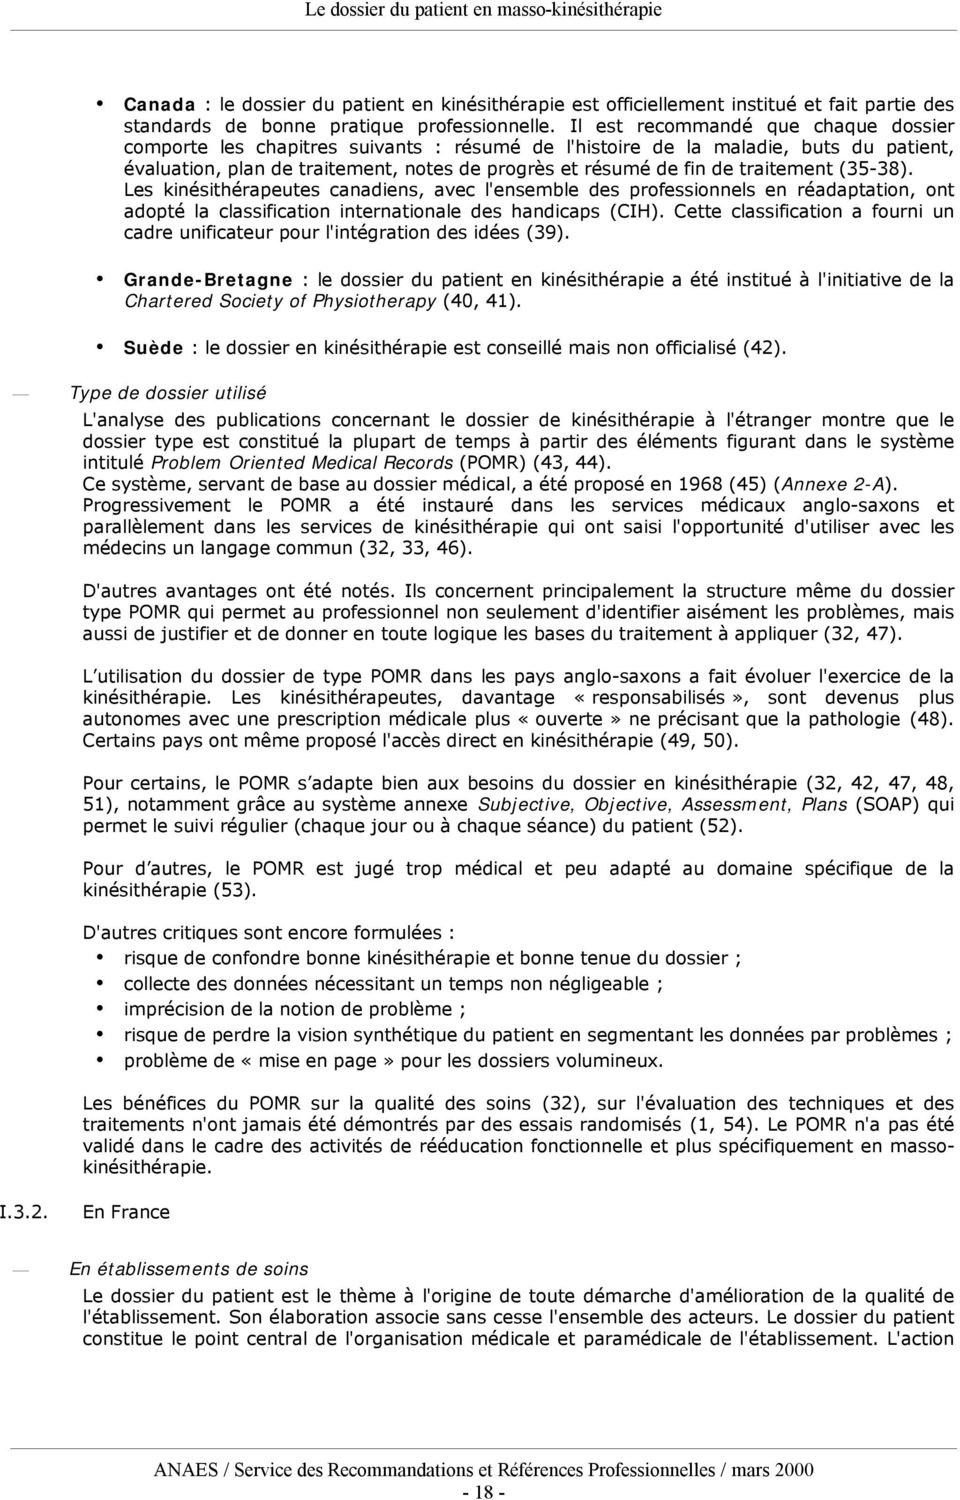 traitement (35-38). Les kinésithérapeutes canadiens, avec l'ensemble des professionnels en réadaptation, ont adopté la classification internationale des handicaps (CIH).